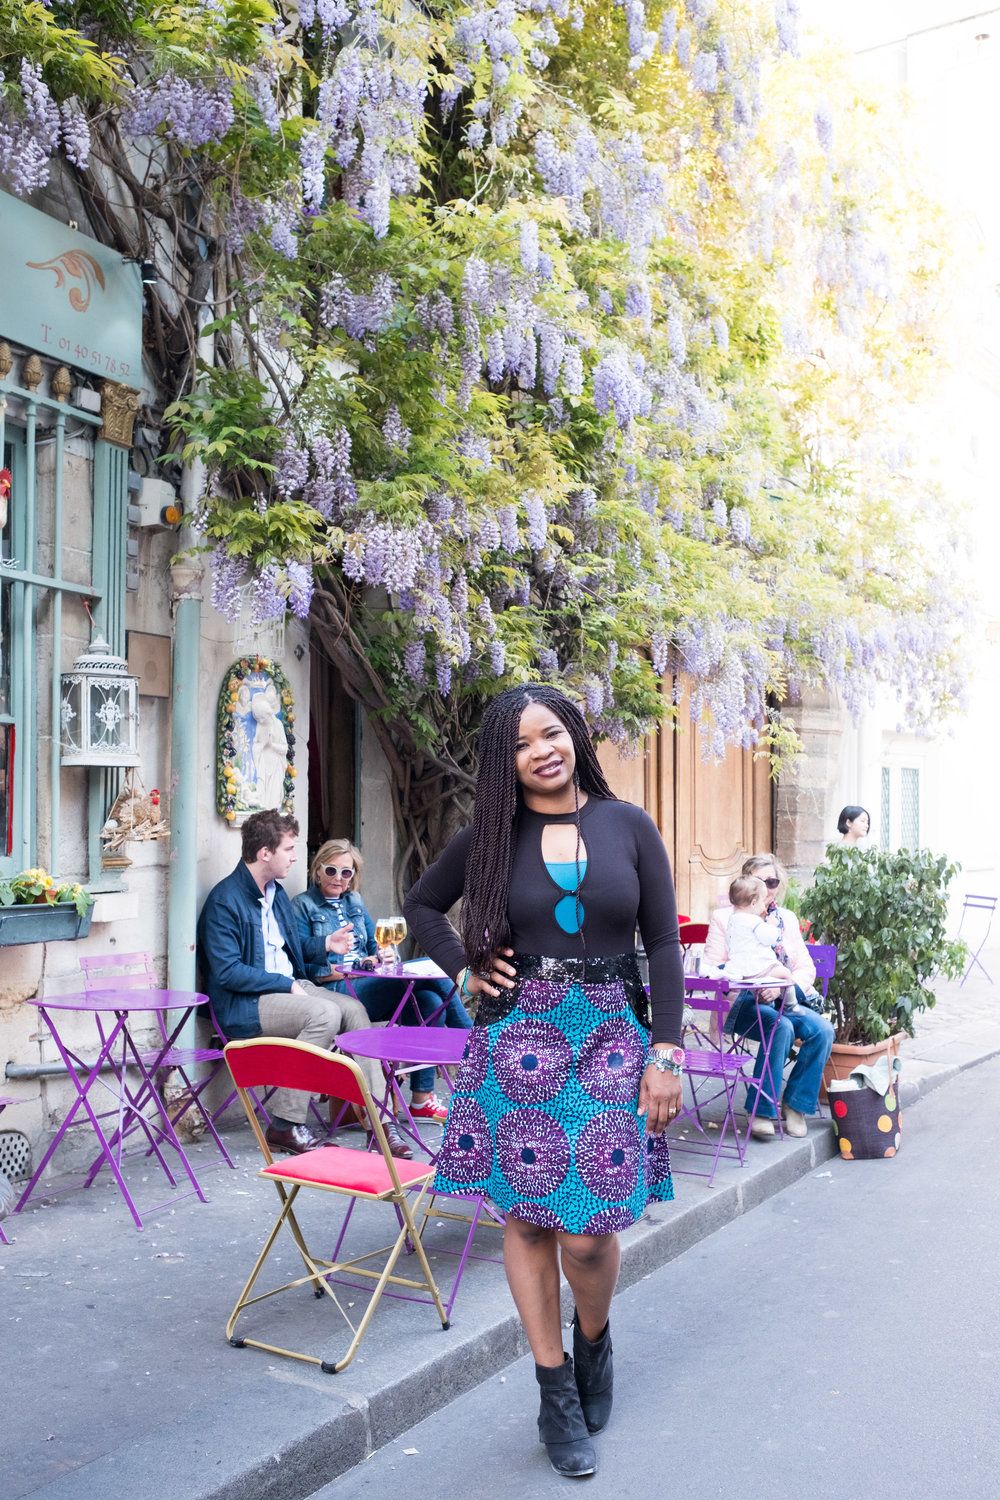 There's wisteria scattered around Paris, and when it's in bloom, it's amazing!